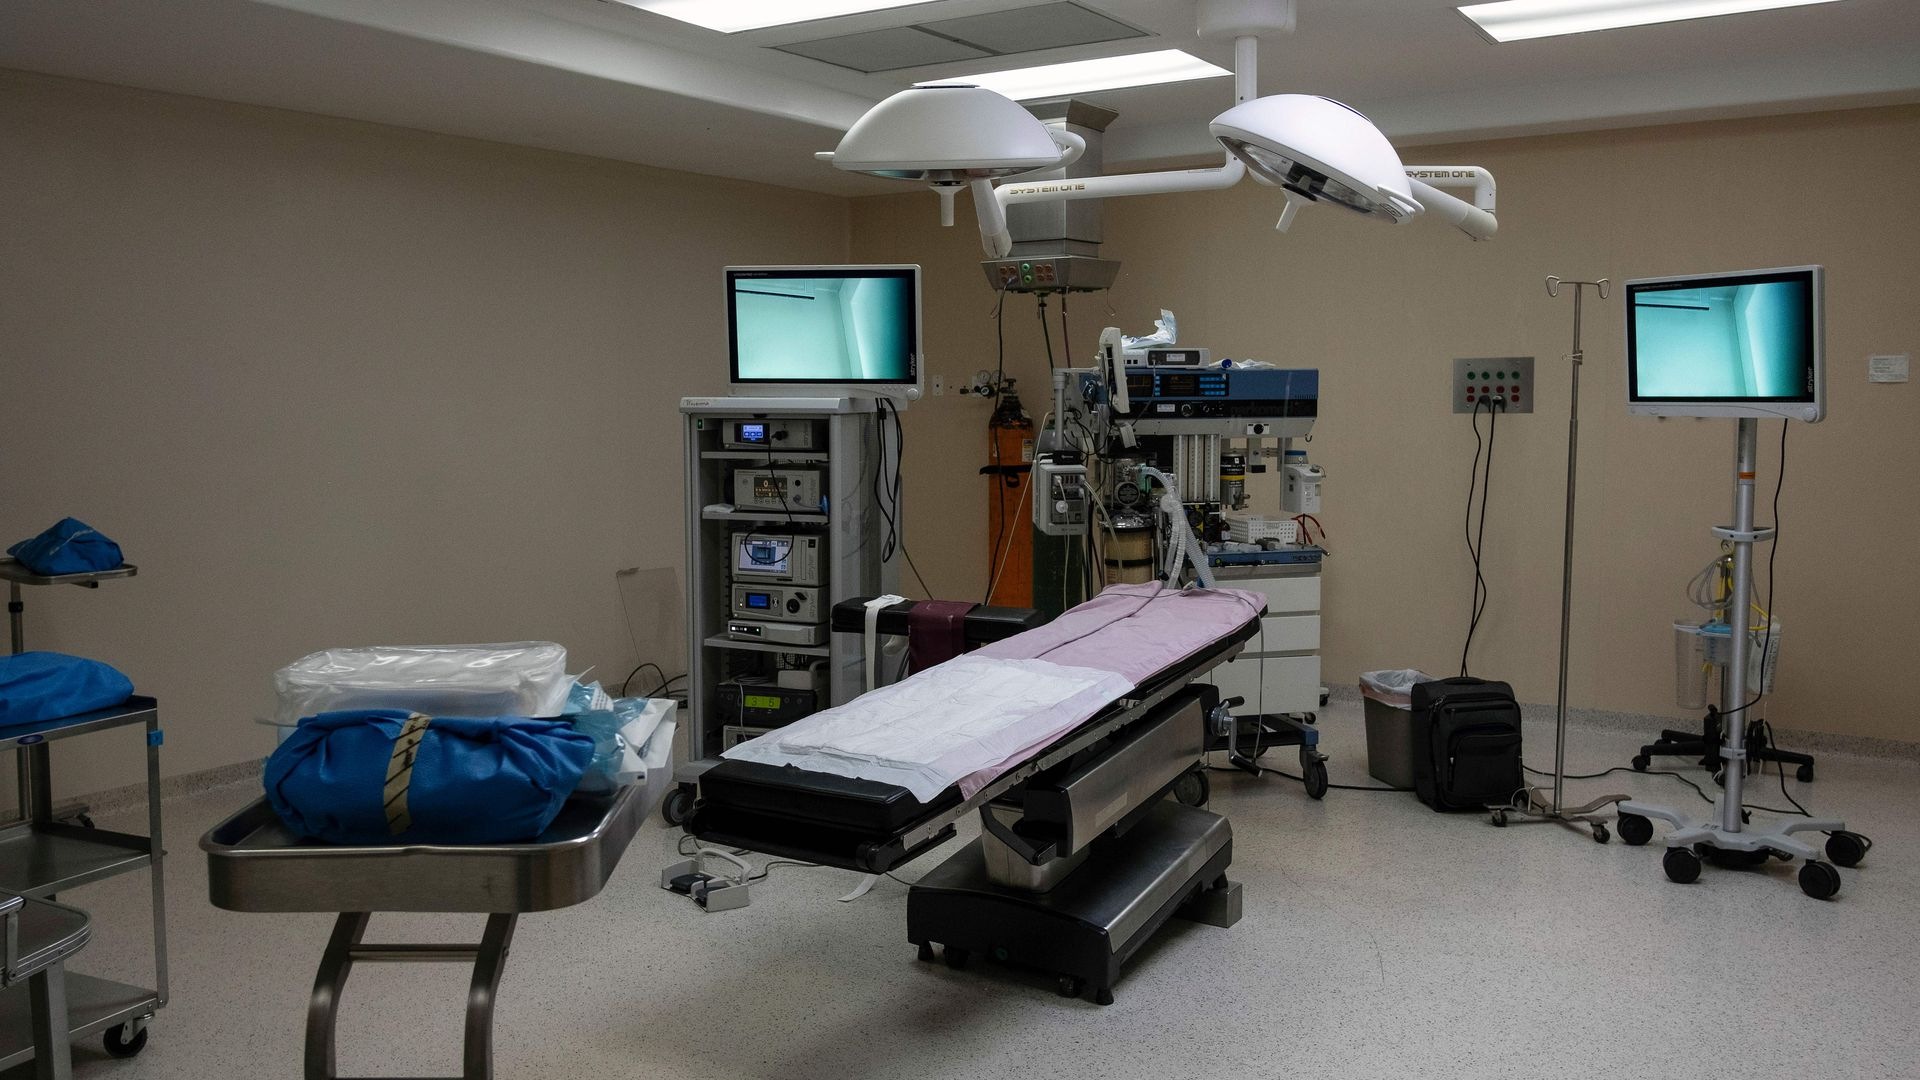 A surgery room.